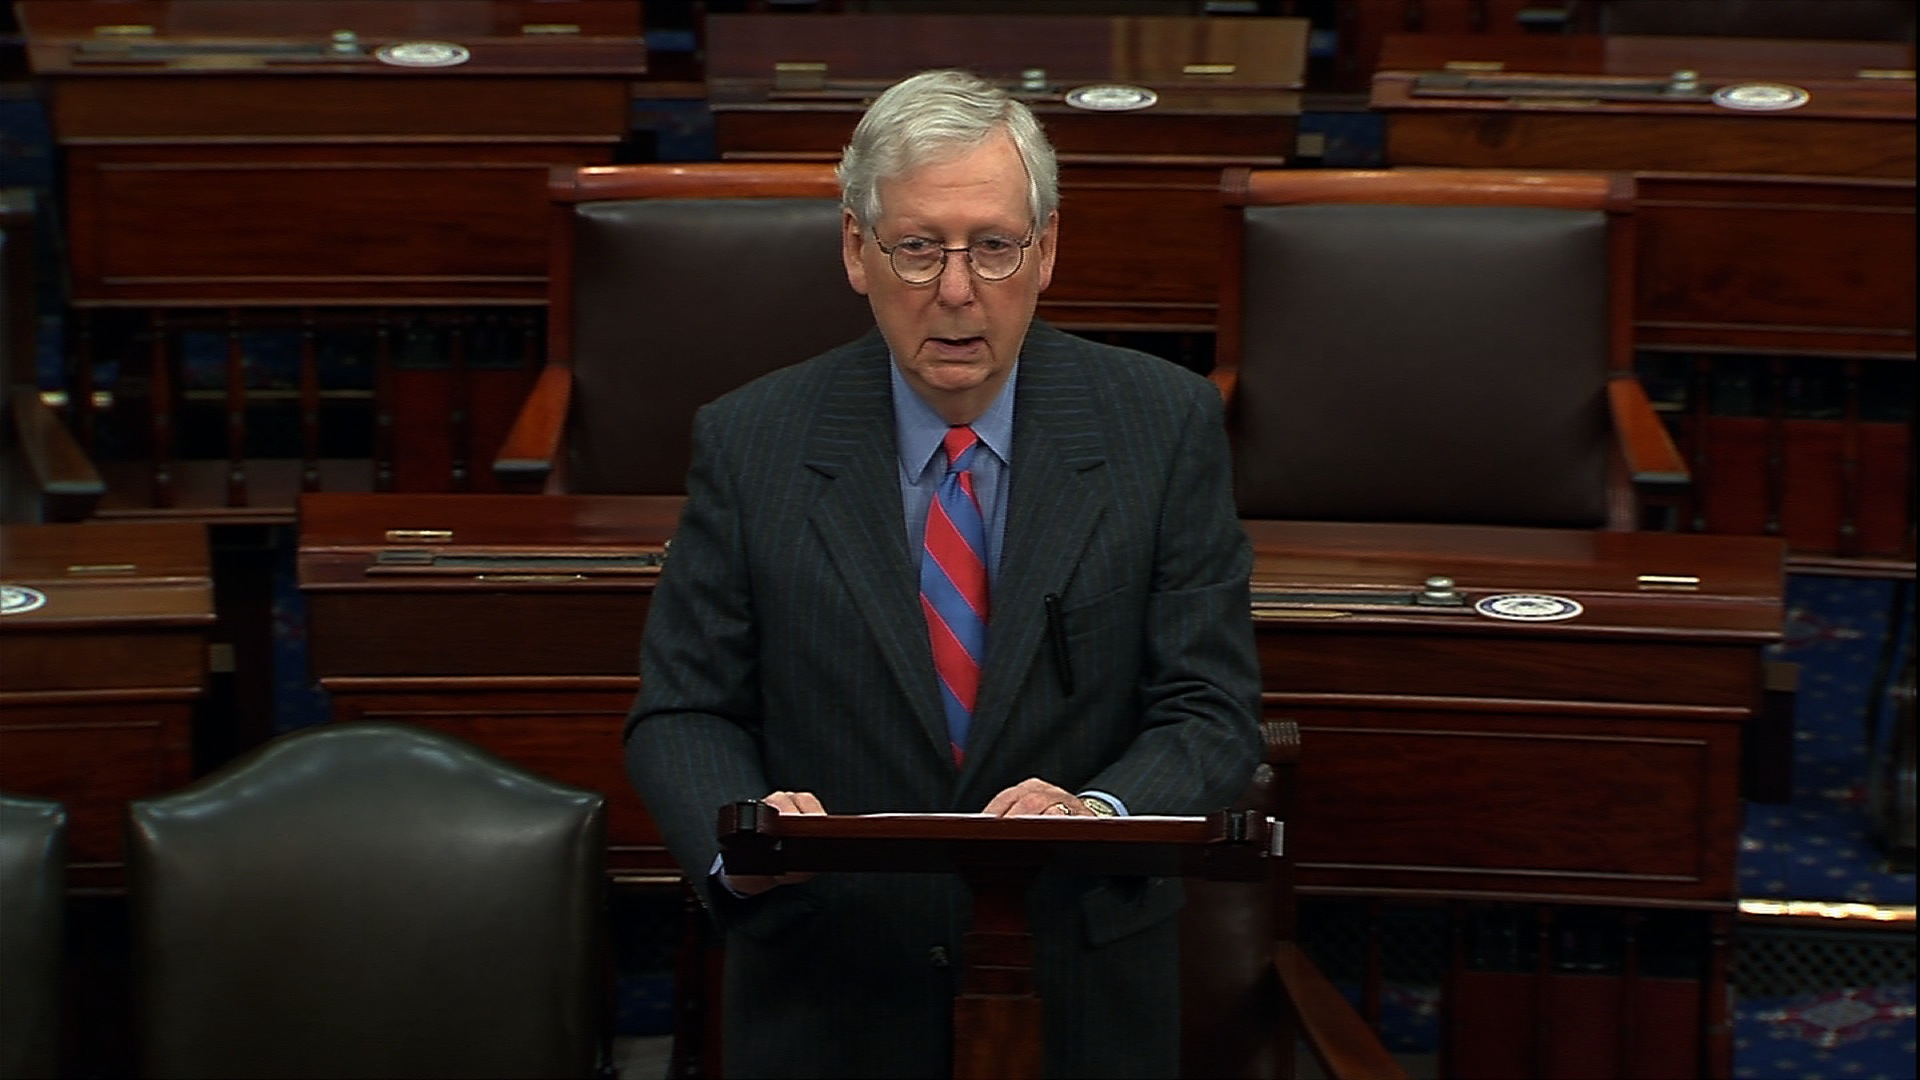 Senate Majority Leader Mitch McConnell speaks on the Senate floor in Washington, DC, on December 17.